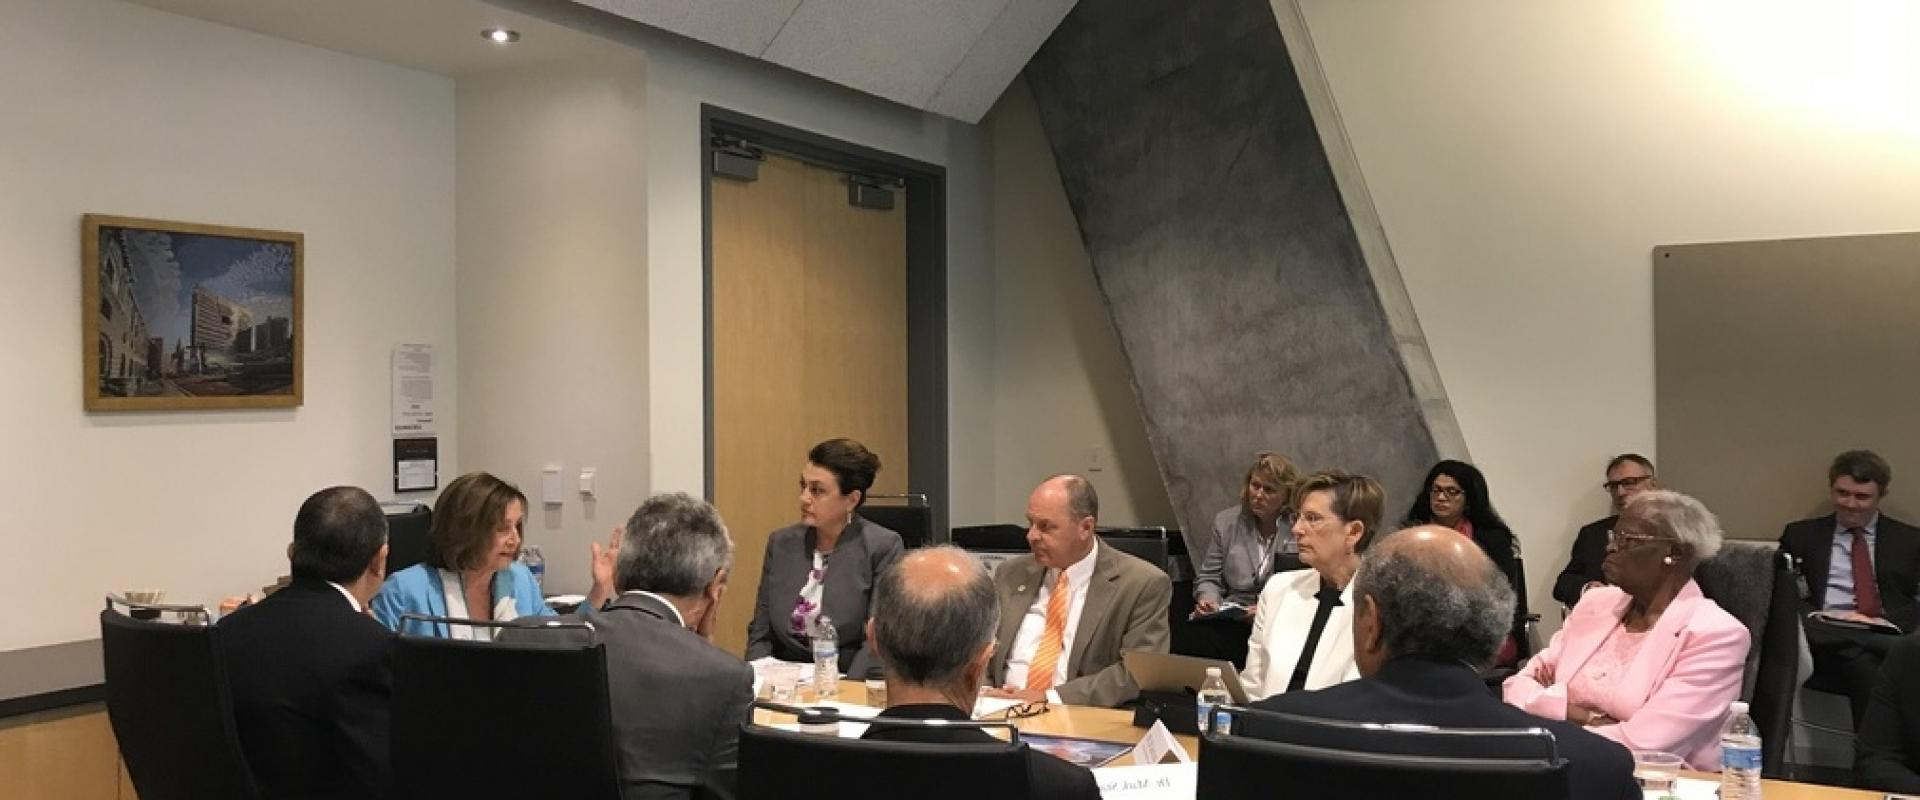 Congresswoman Pelosi called for an immediate investigation by the Navy and EPA Inspectors General and an urgent briefing on the status of the Hunters Point clean-up and re-testing. On July 31st, Pelosi met with representatives from the Navy, EPA, CA Depar